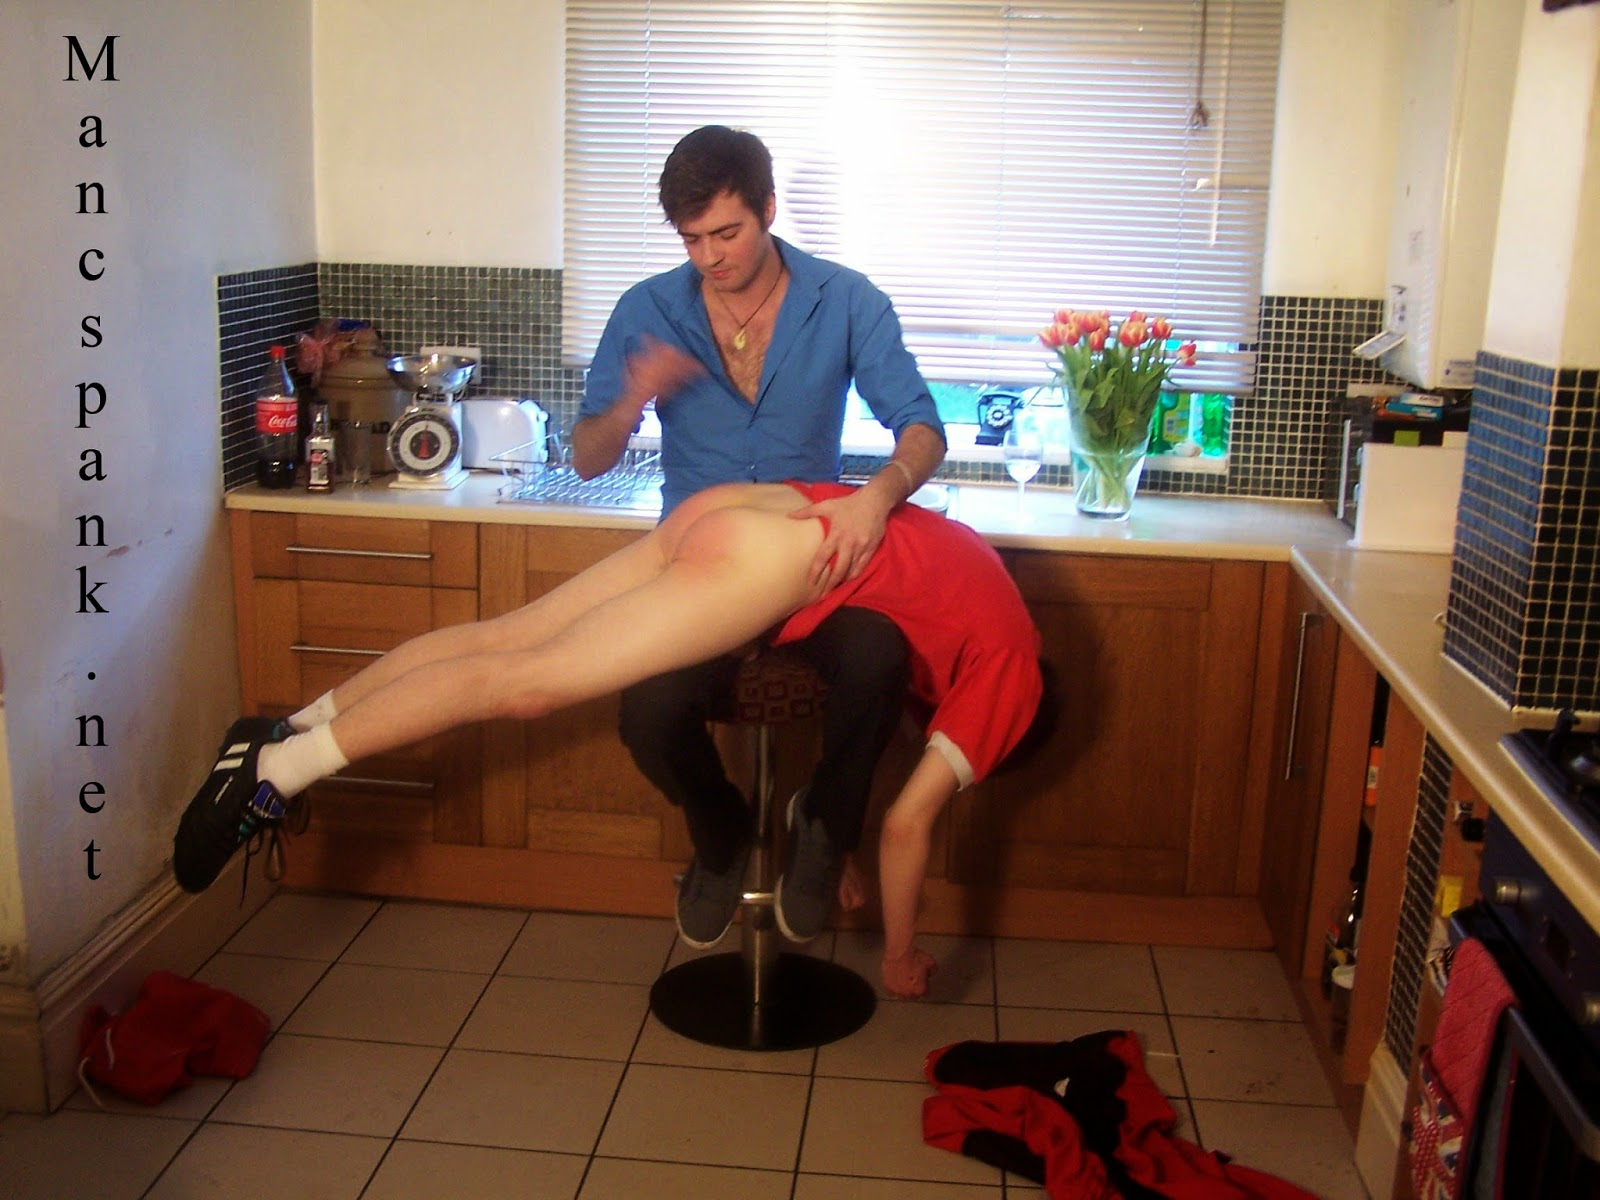 Strap leather spanked a with